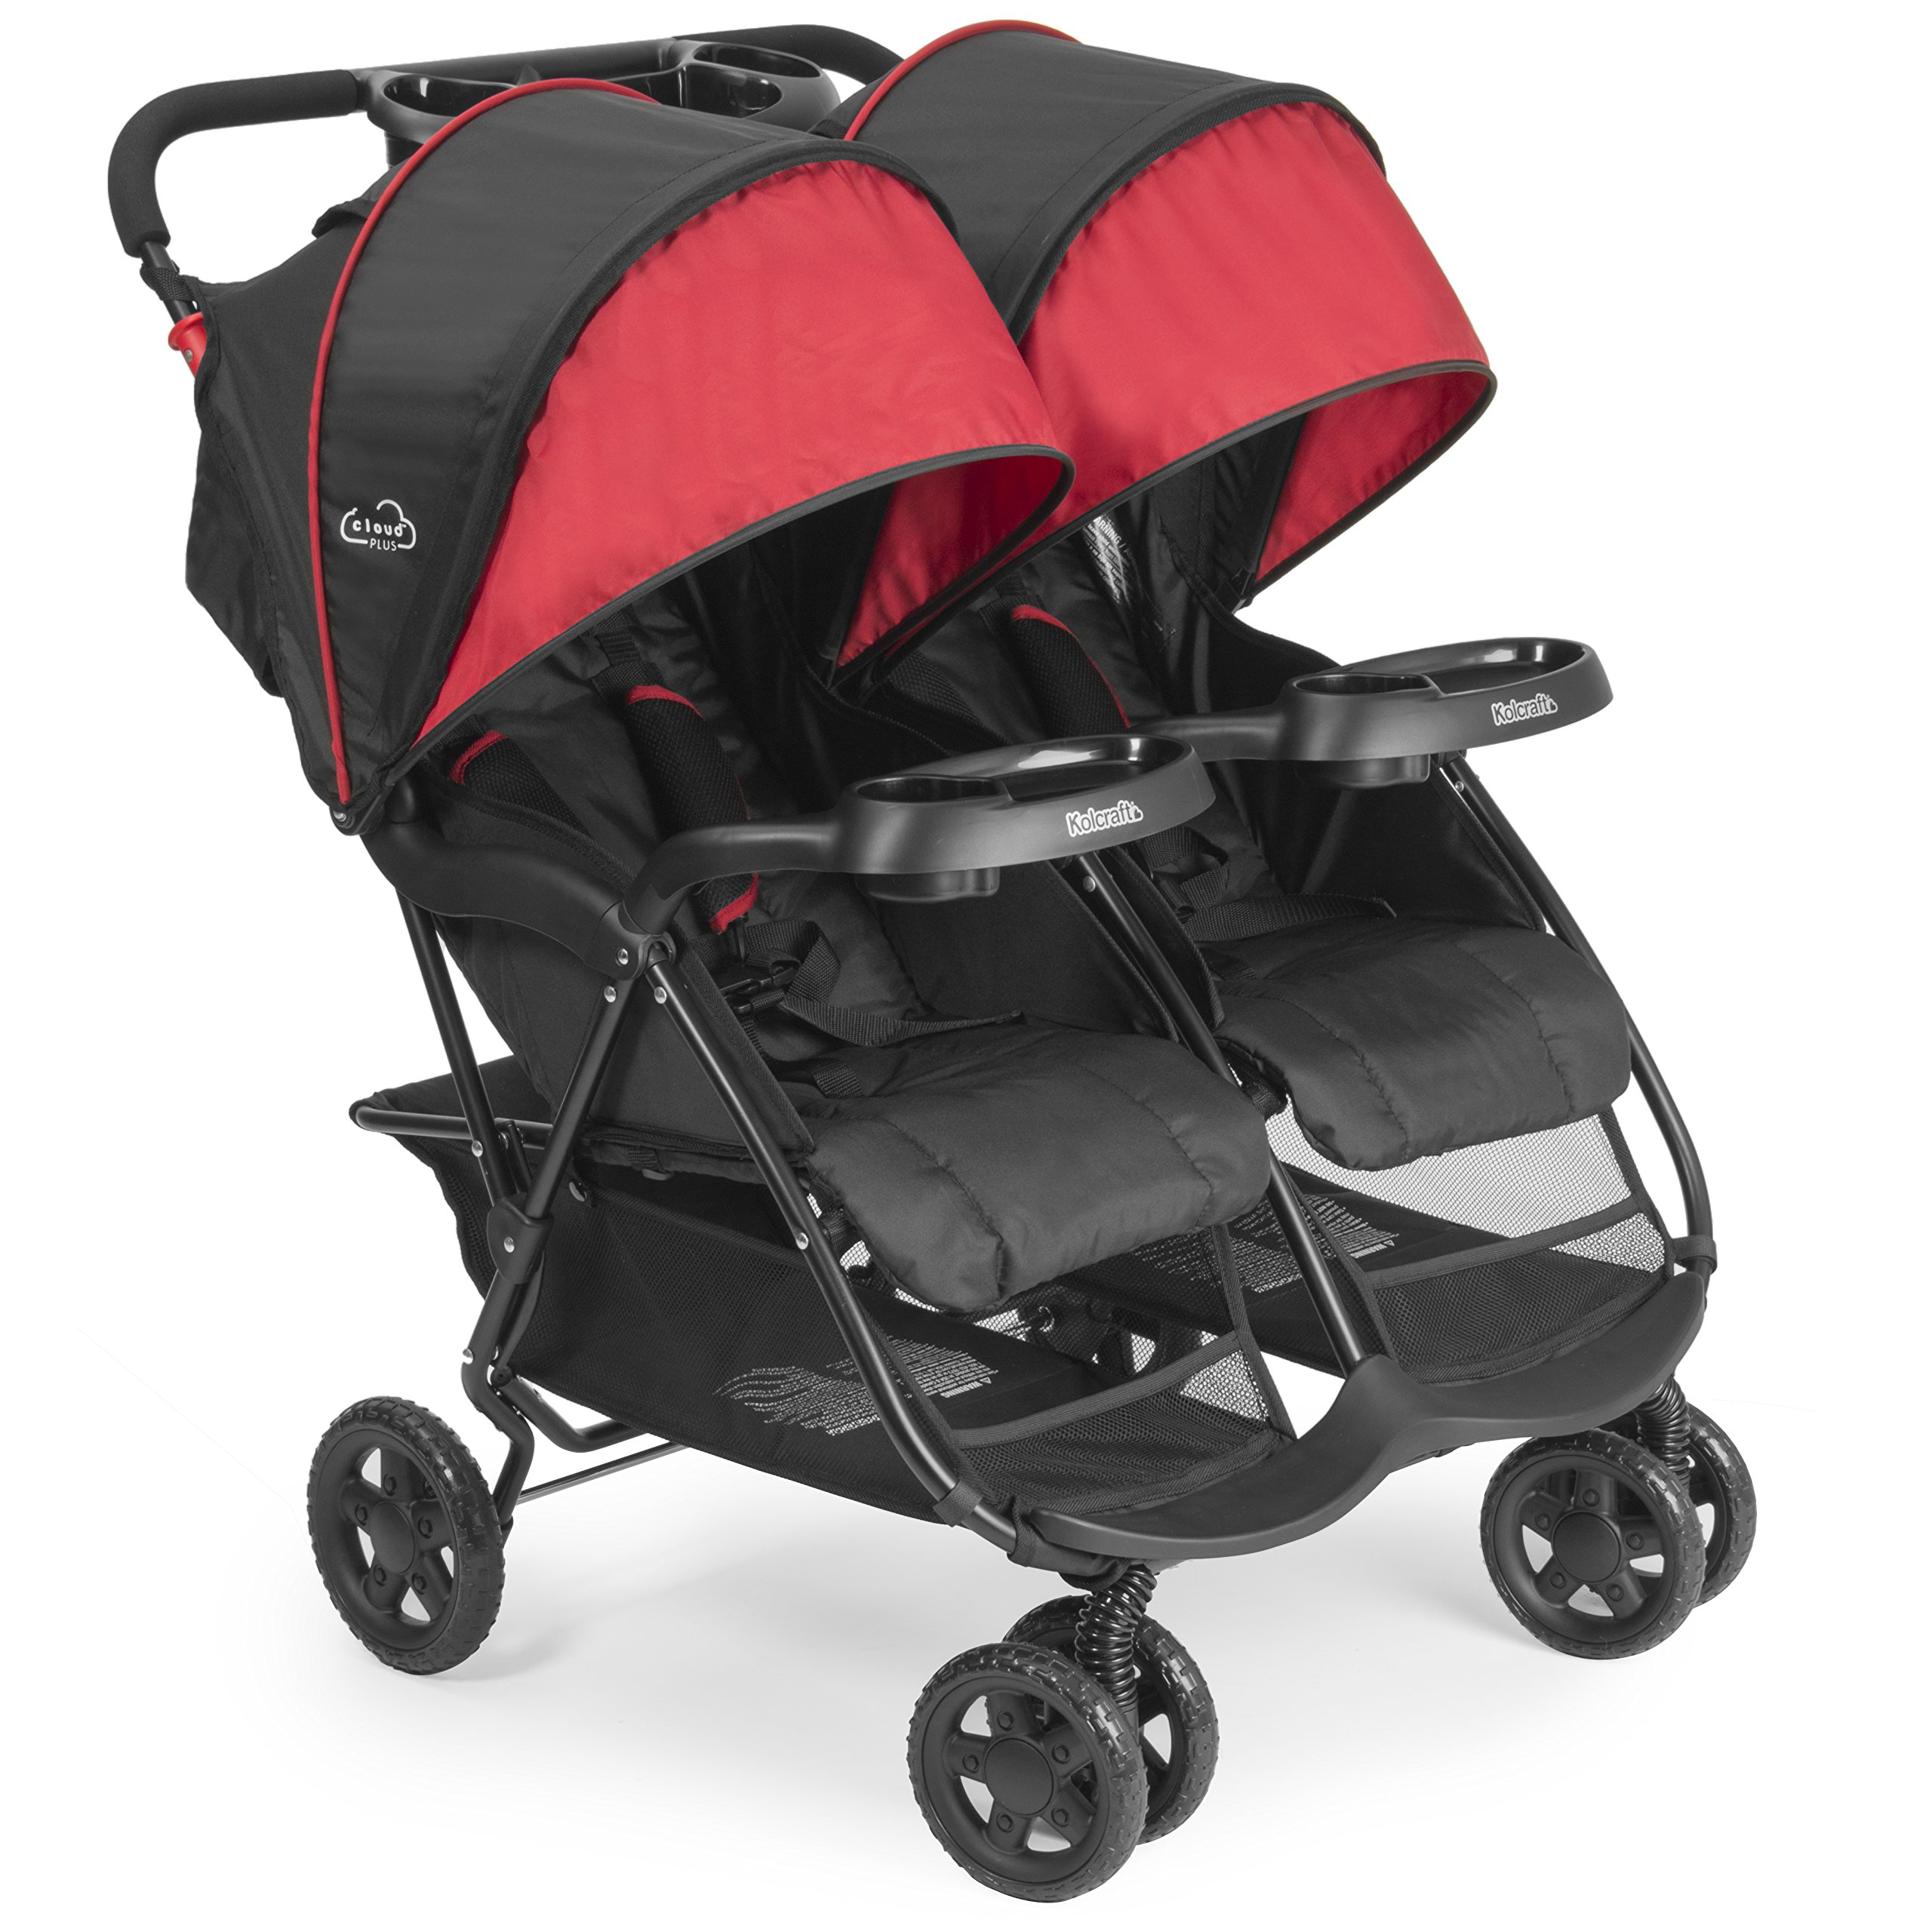 Kolcraft Cloud Plus Lightweight Double Stroller - 5-Point Safety System, Red/Black by Kolcraft